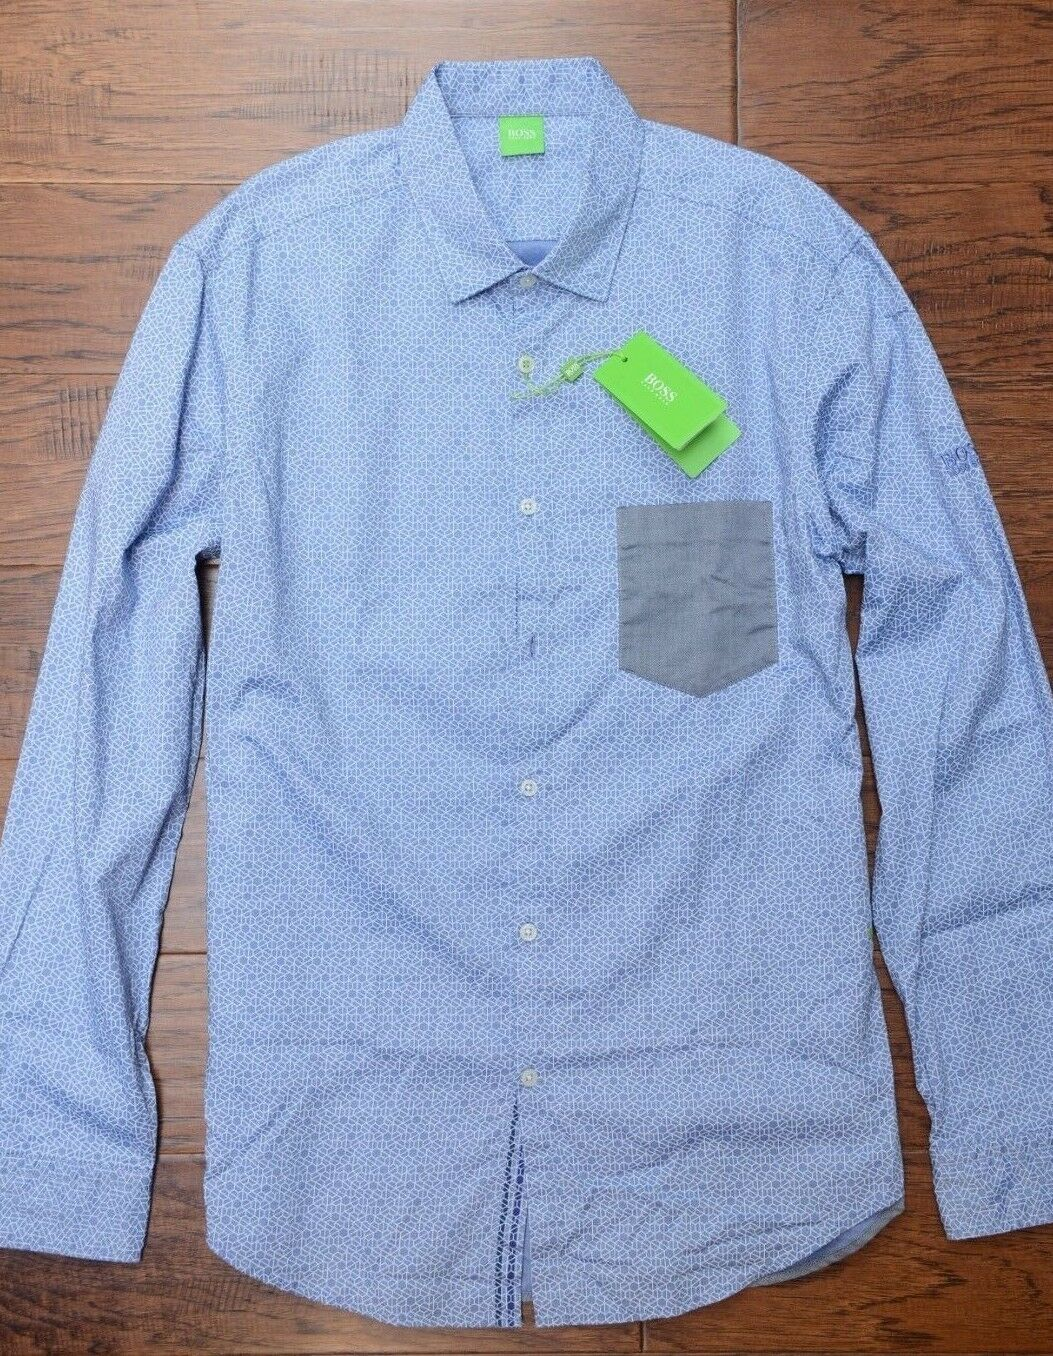 Hugo Boss Green  Men's Badone bluee Hexagon Print Cotton Casual Shirt XL